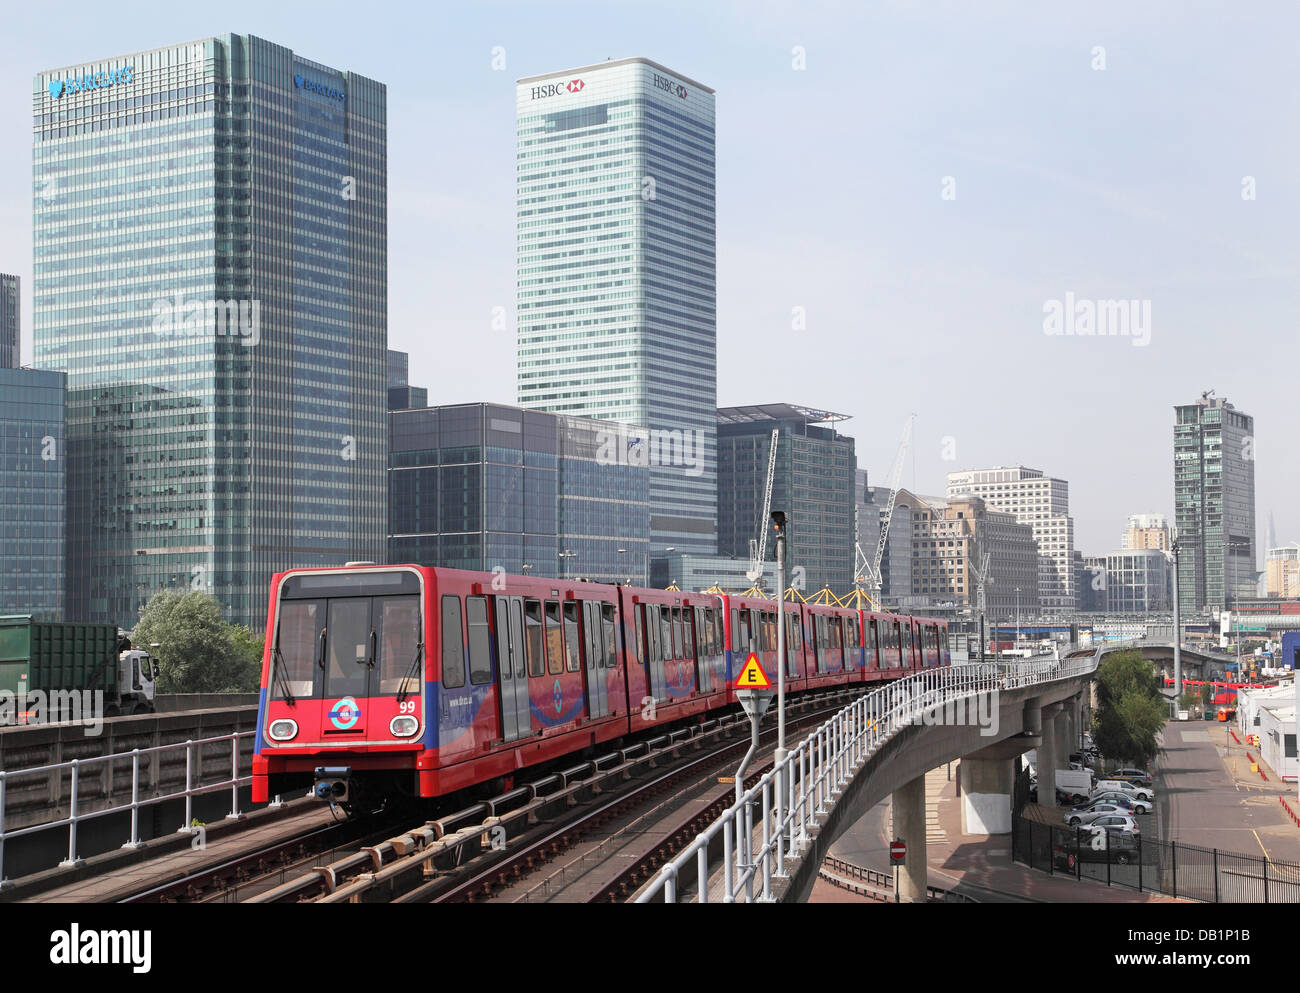 A London Docklands Light Railway train leaves Blackwall  station. Canary Wharf business district in the background - Stock Image